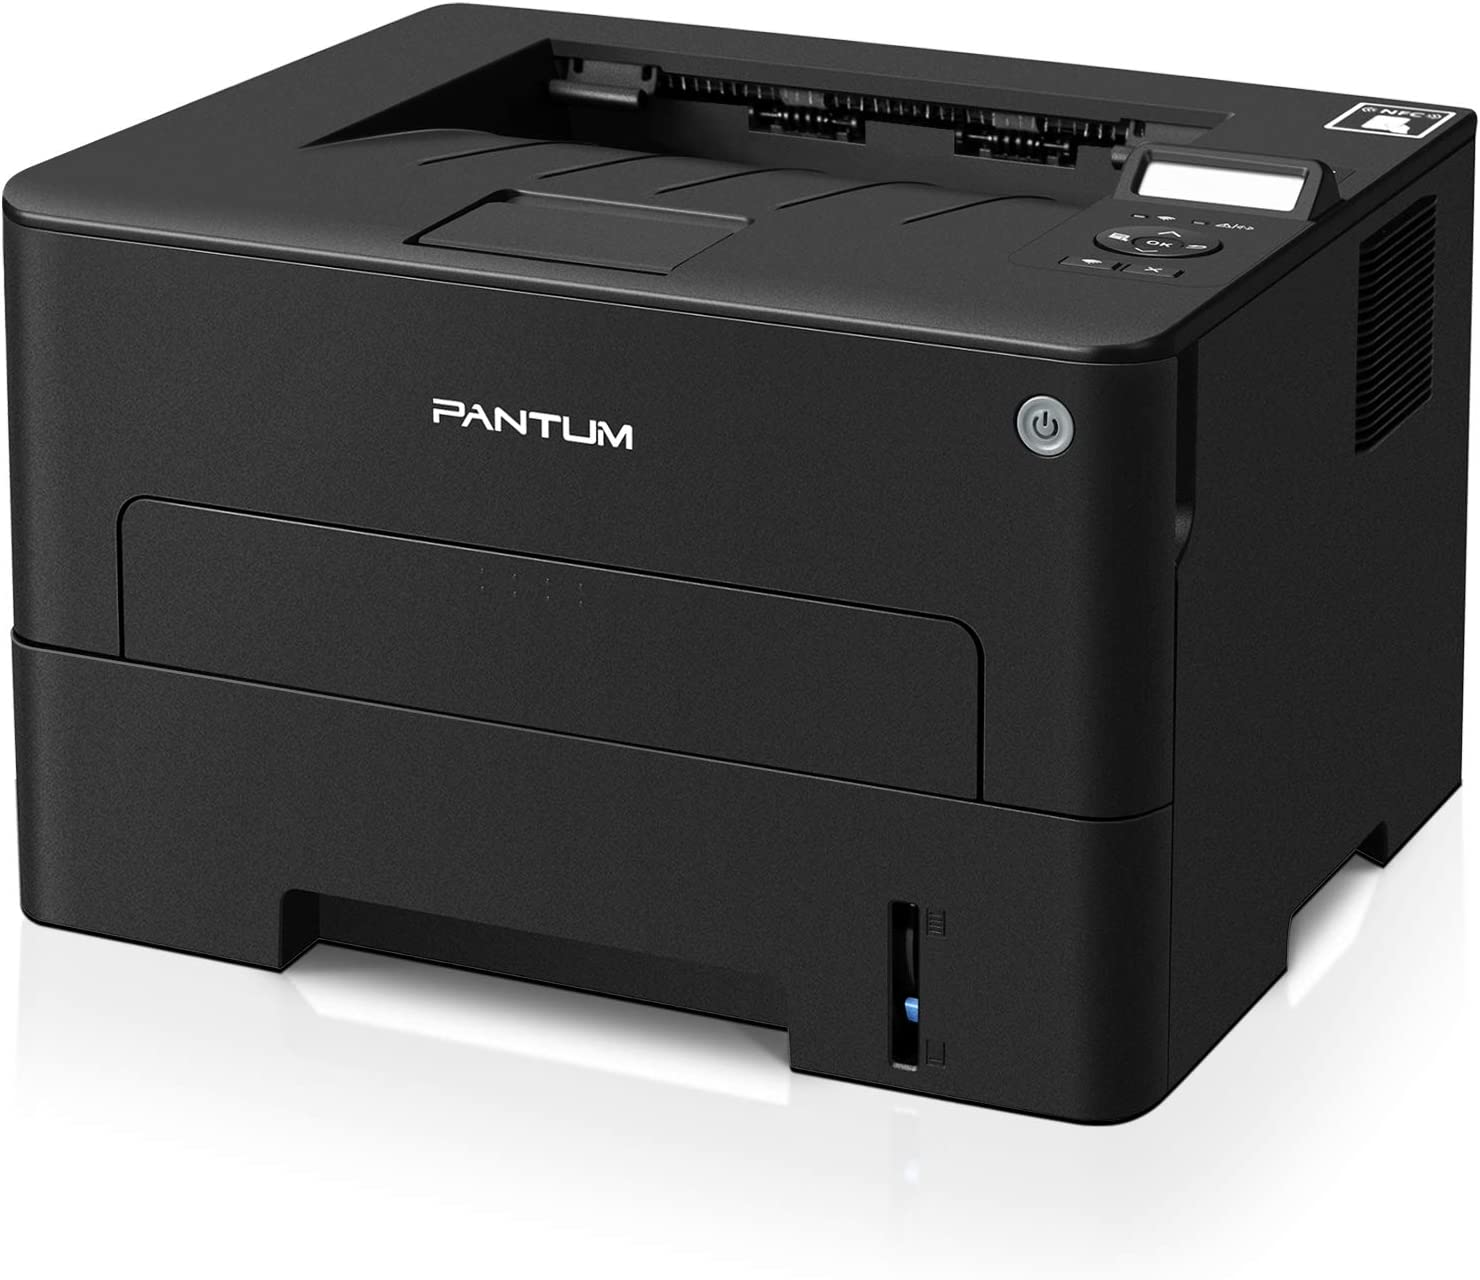 Wireless Black and White Laser Printer with Auto Duplex Printing and NFC, Printing up to 33ppm, Pantum P3302DW